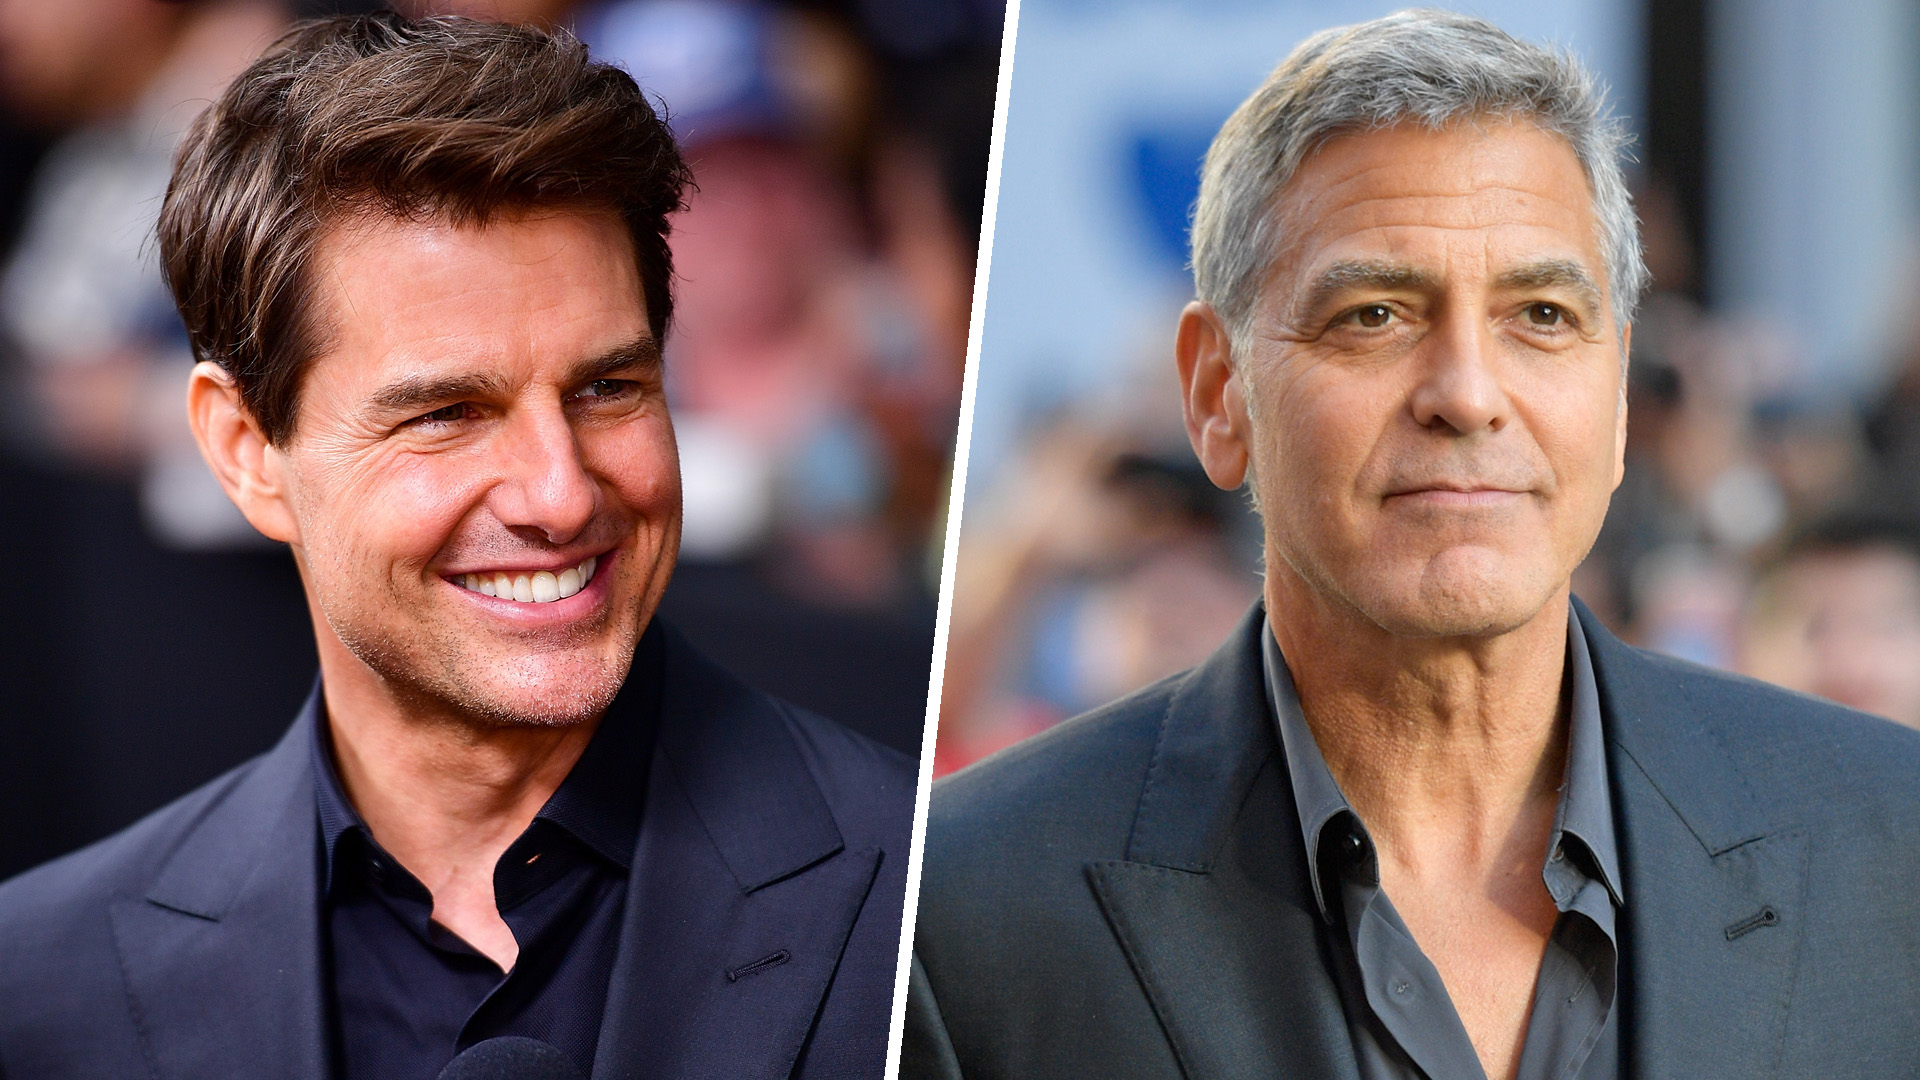 Tom Cruise offers advice to George Clooney following scooter crash